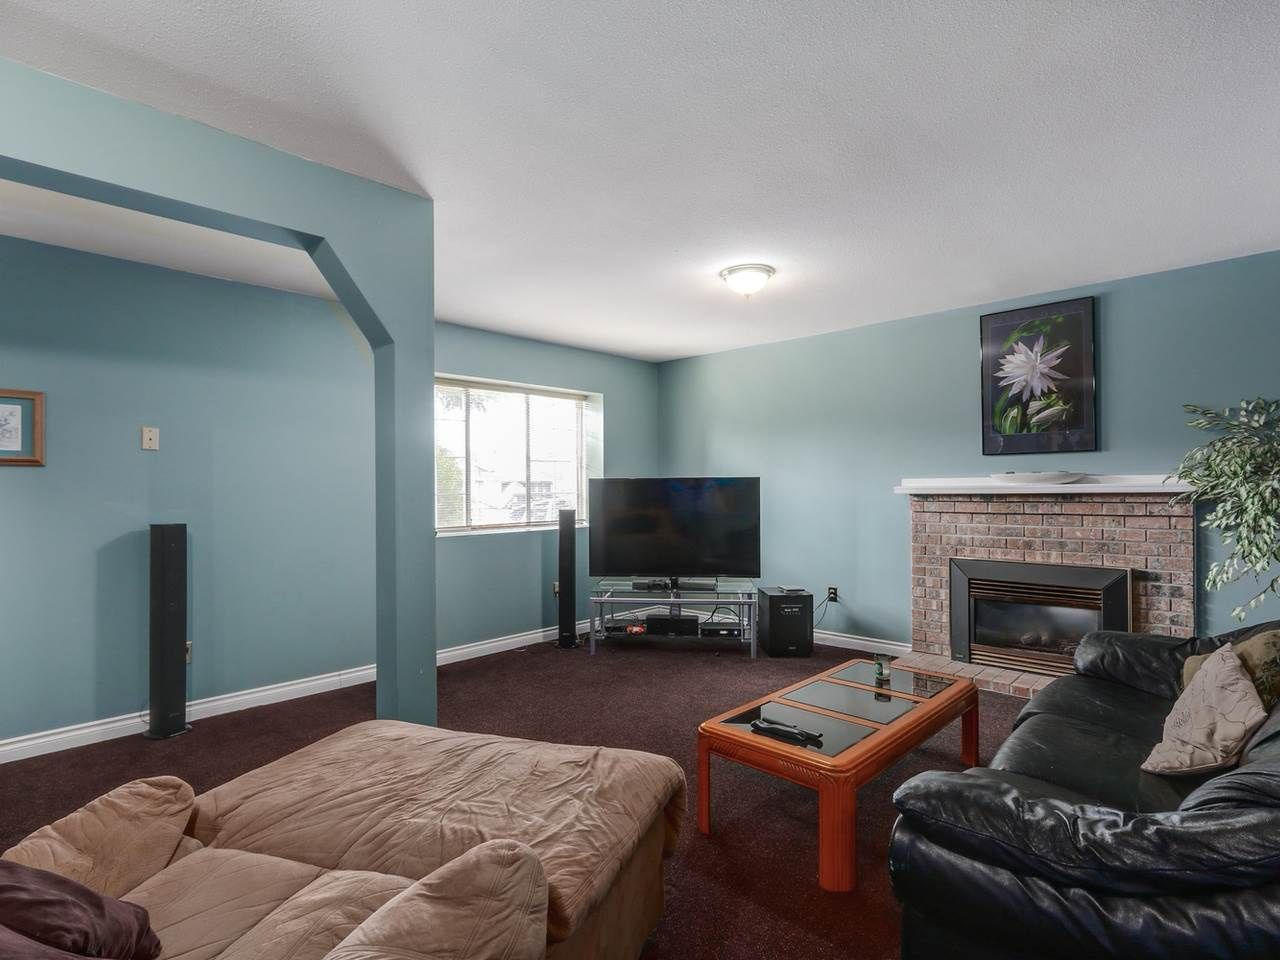 """Photo 13: Photos: 2559 BLUEBELL Avenue in Coquitlam: Summitt View House for sale in """"SUMMITT VIEW"""" : MLS®# R2064204"""